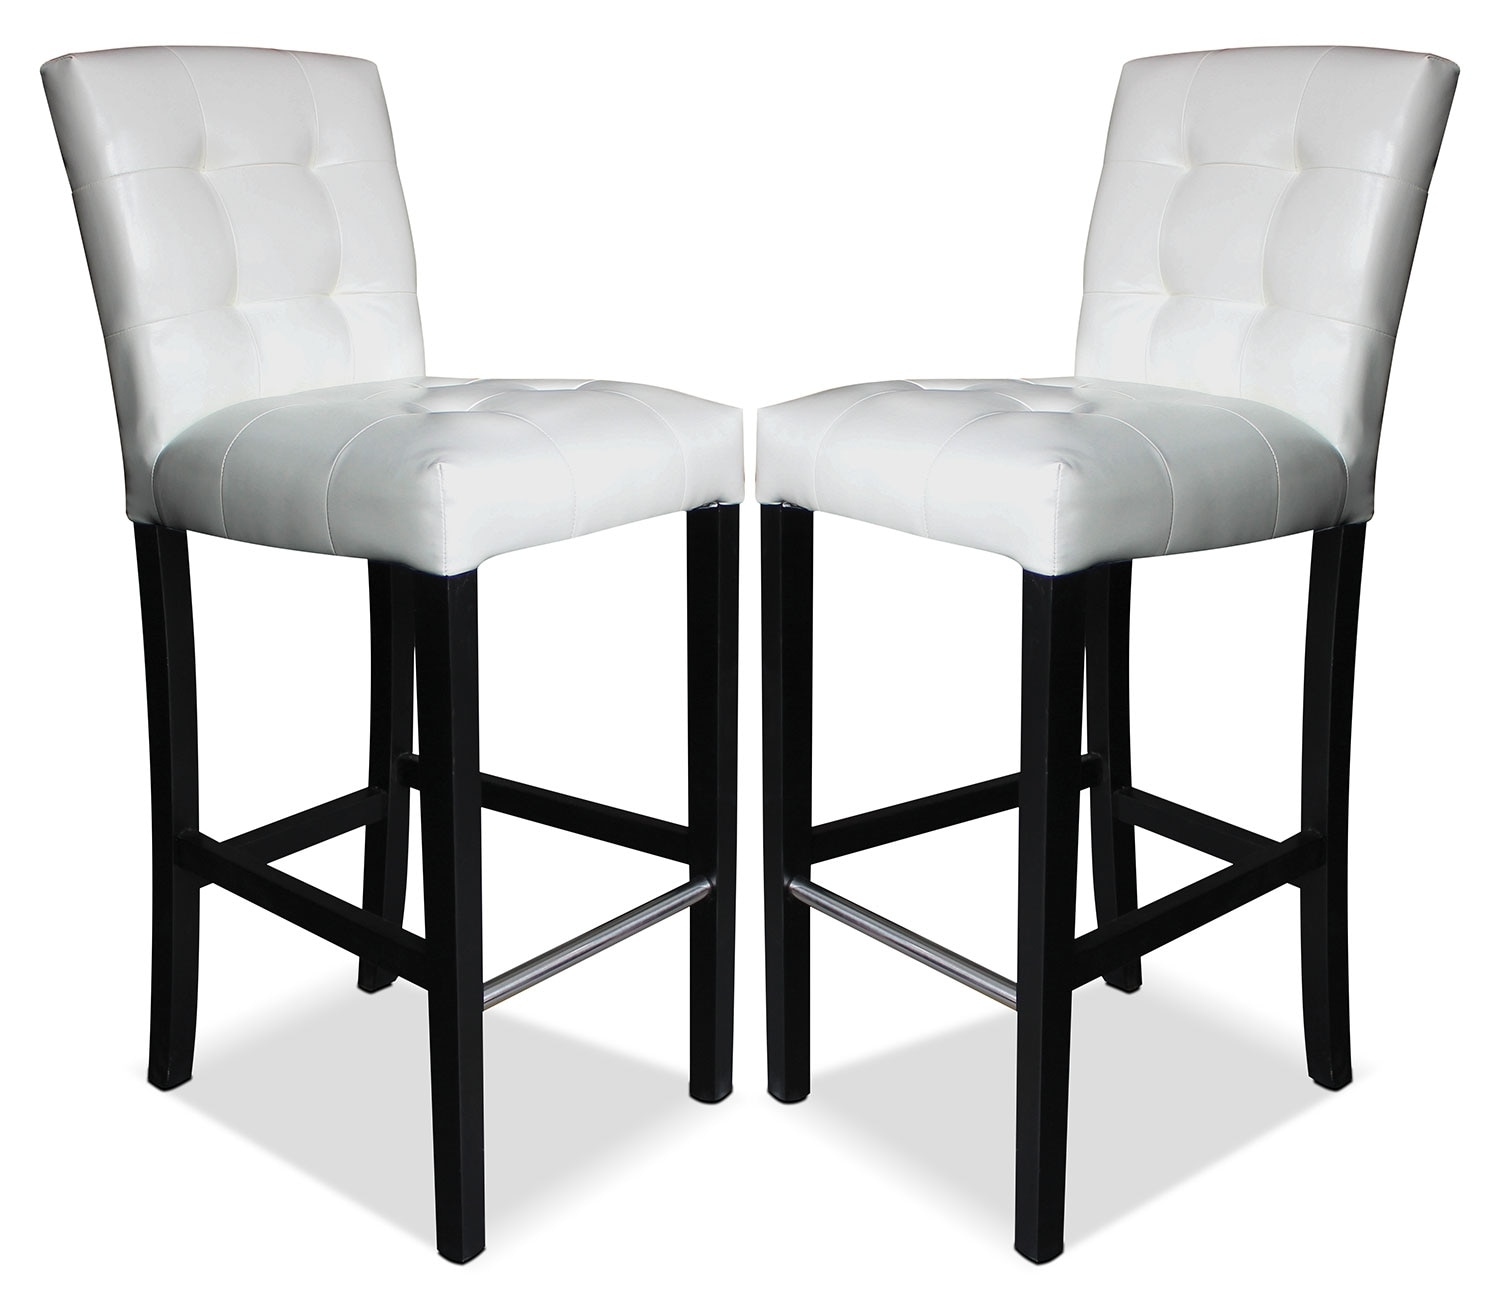 Dining Room Furniture - Cosmo Bar Stool Set of 2 - White